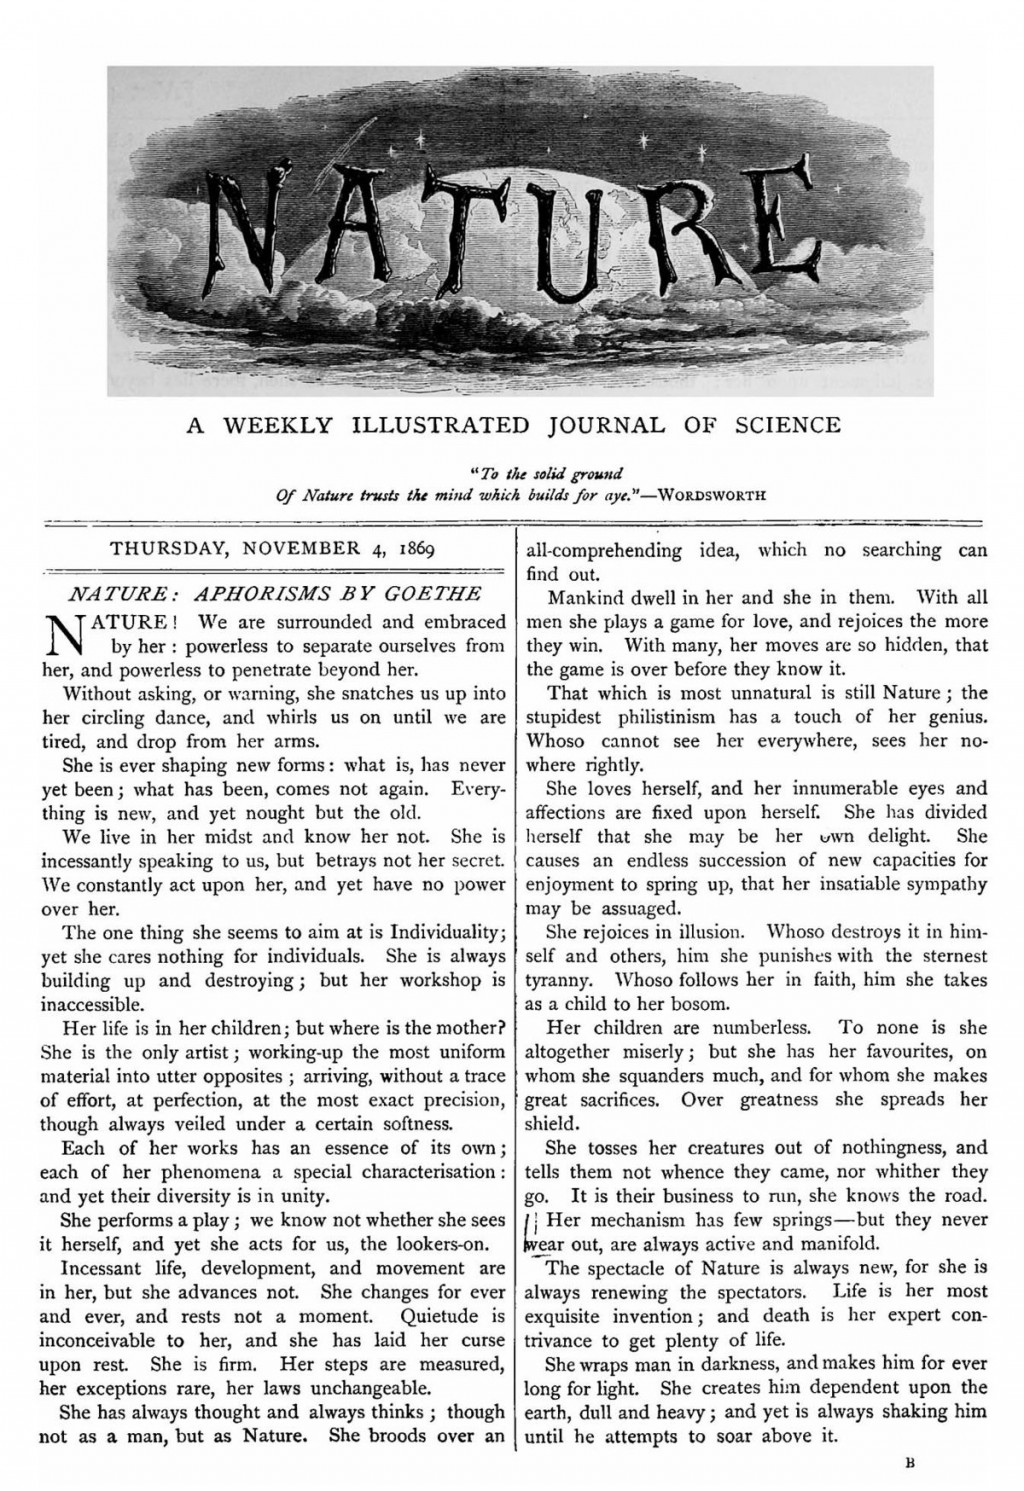 017 Free Research Papers On English Literature Paper 1200px Nature Cover2c November 42c 1869 Amazing Large